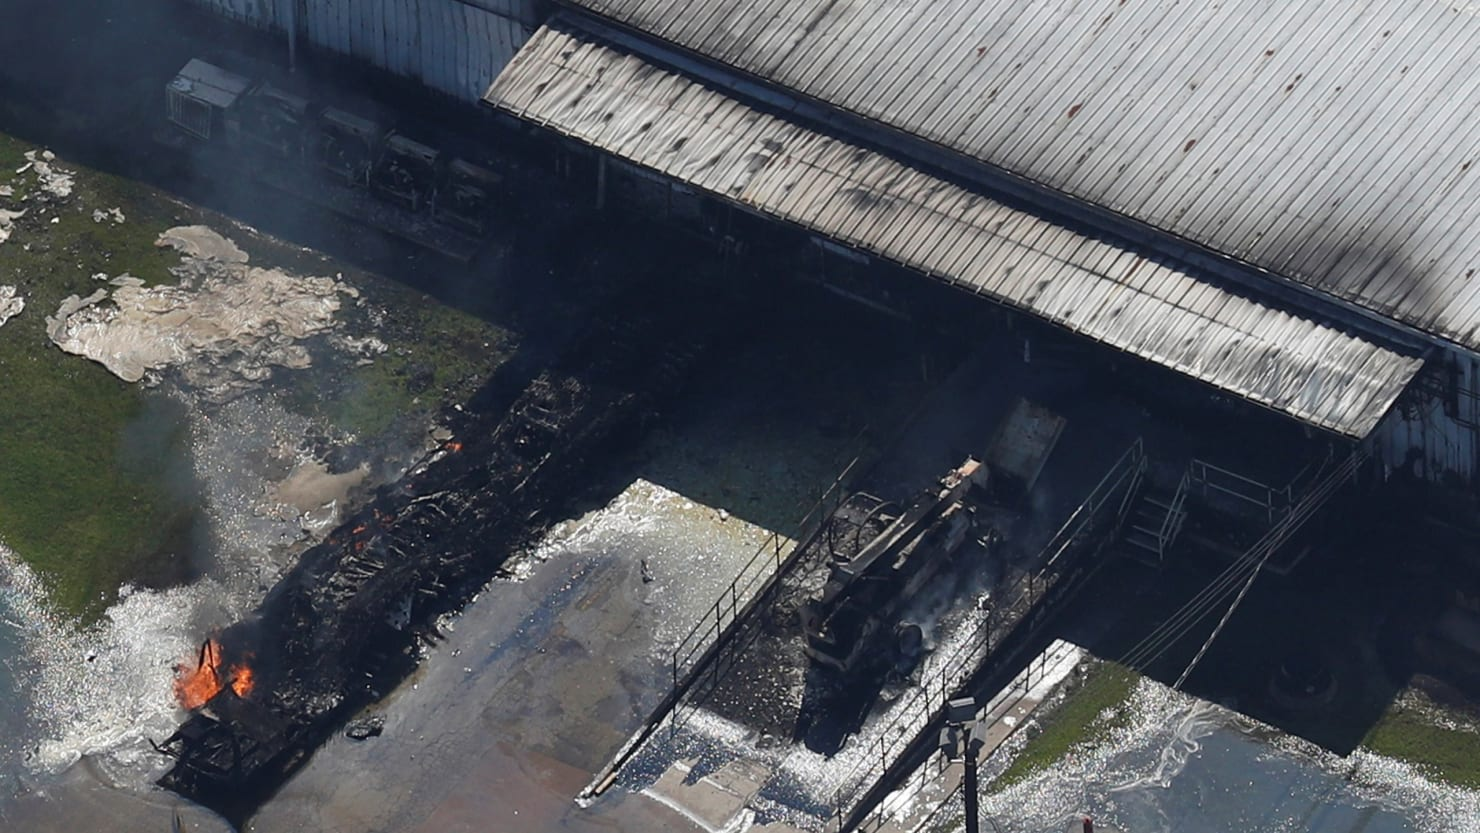 Burning plant in Texas fined by feds before flood